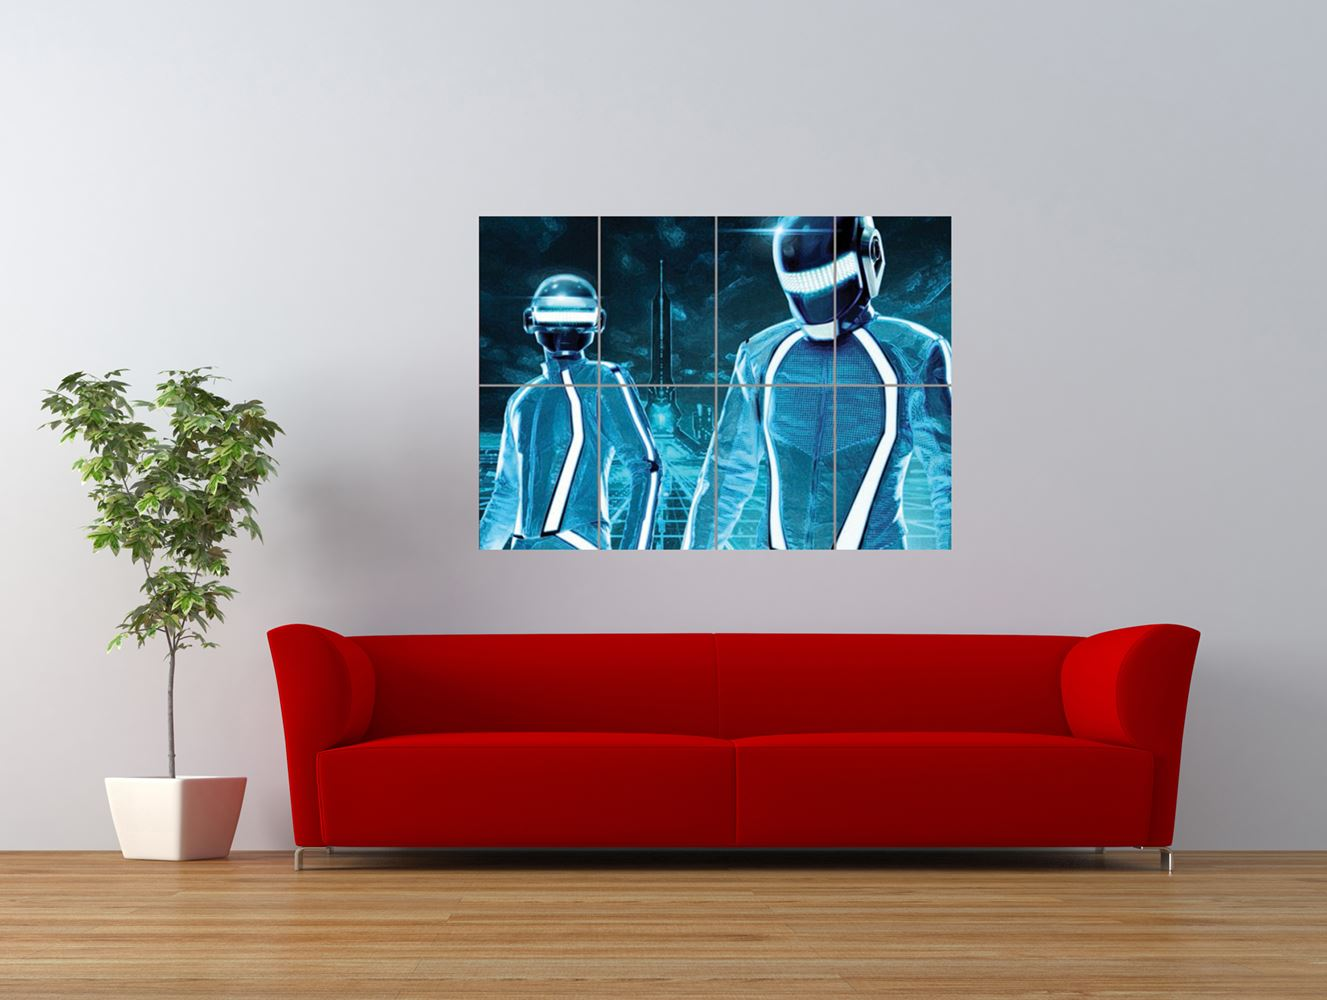 daft punk tron legacy music band giant art print panel poster nor0619. Black Bedroom Furniture Sets. Home Design Ideas